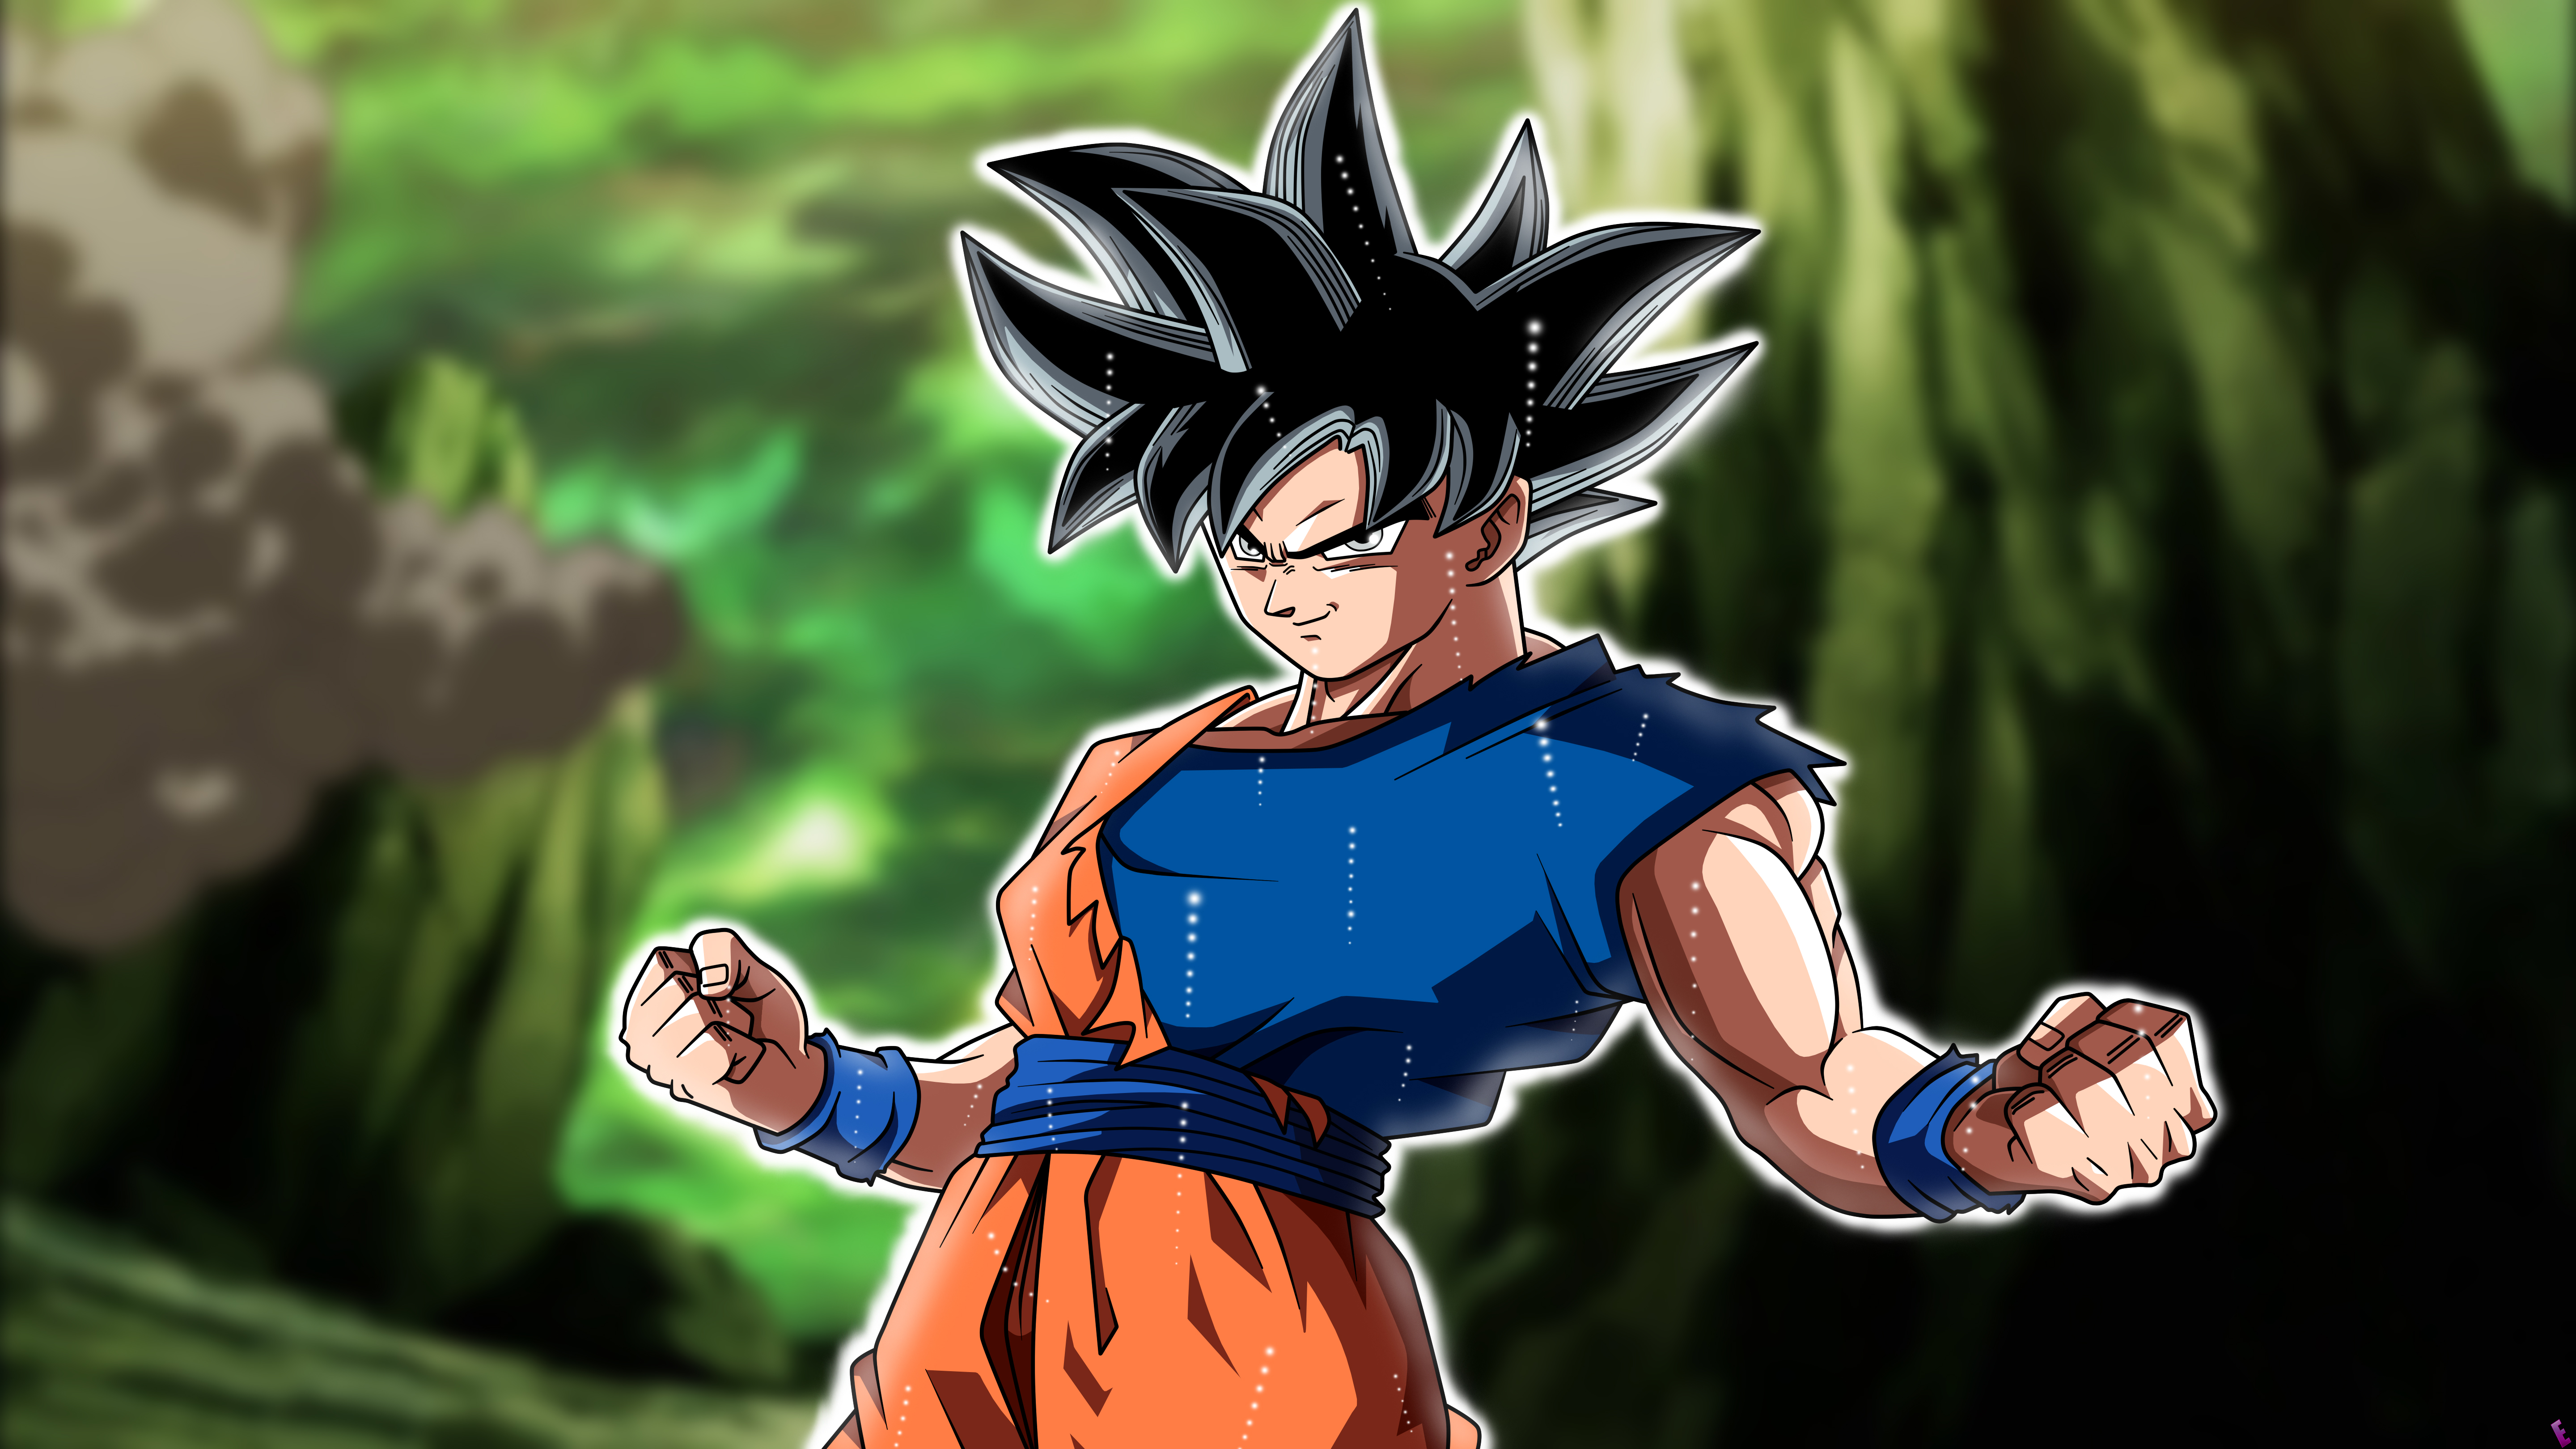 Goku Dragon Ball Super 5k 2018, HD Anime, 4k Wallpapers, Images, Backgrounds, Photos and Pictures